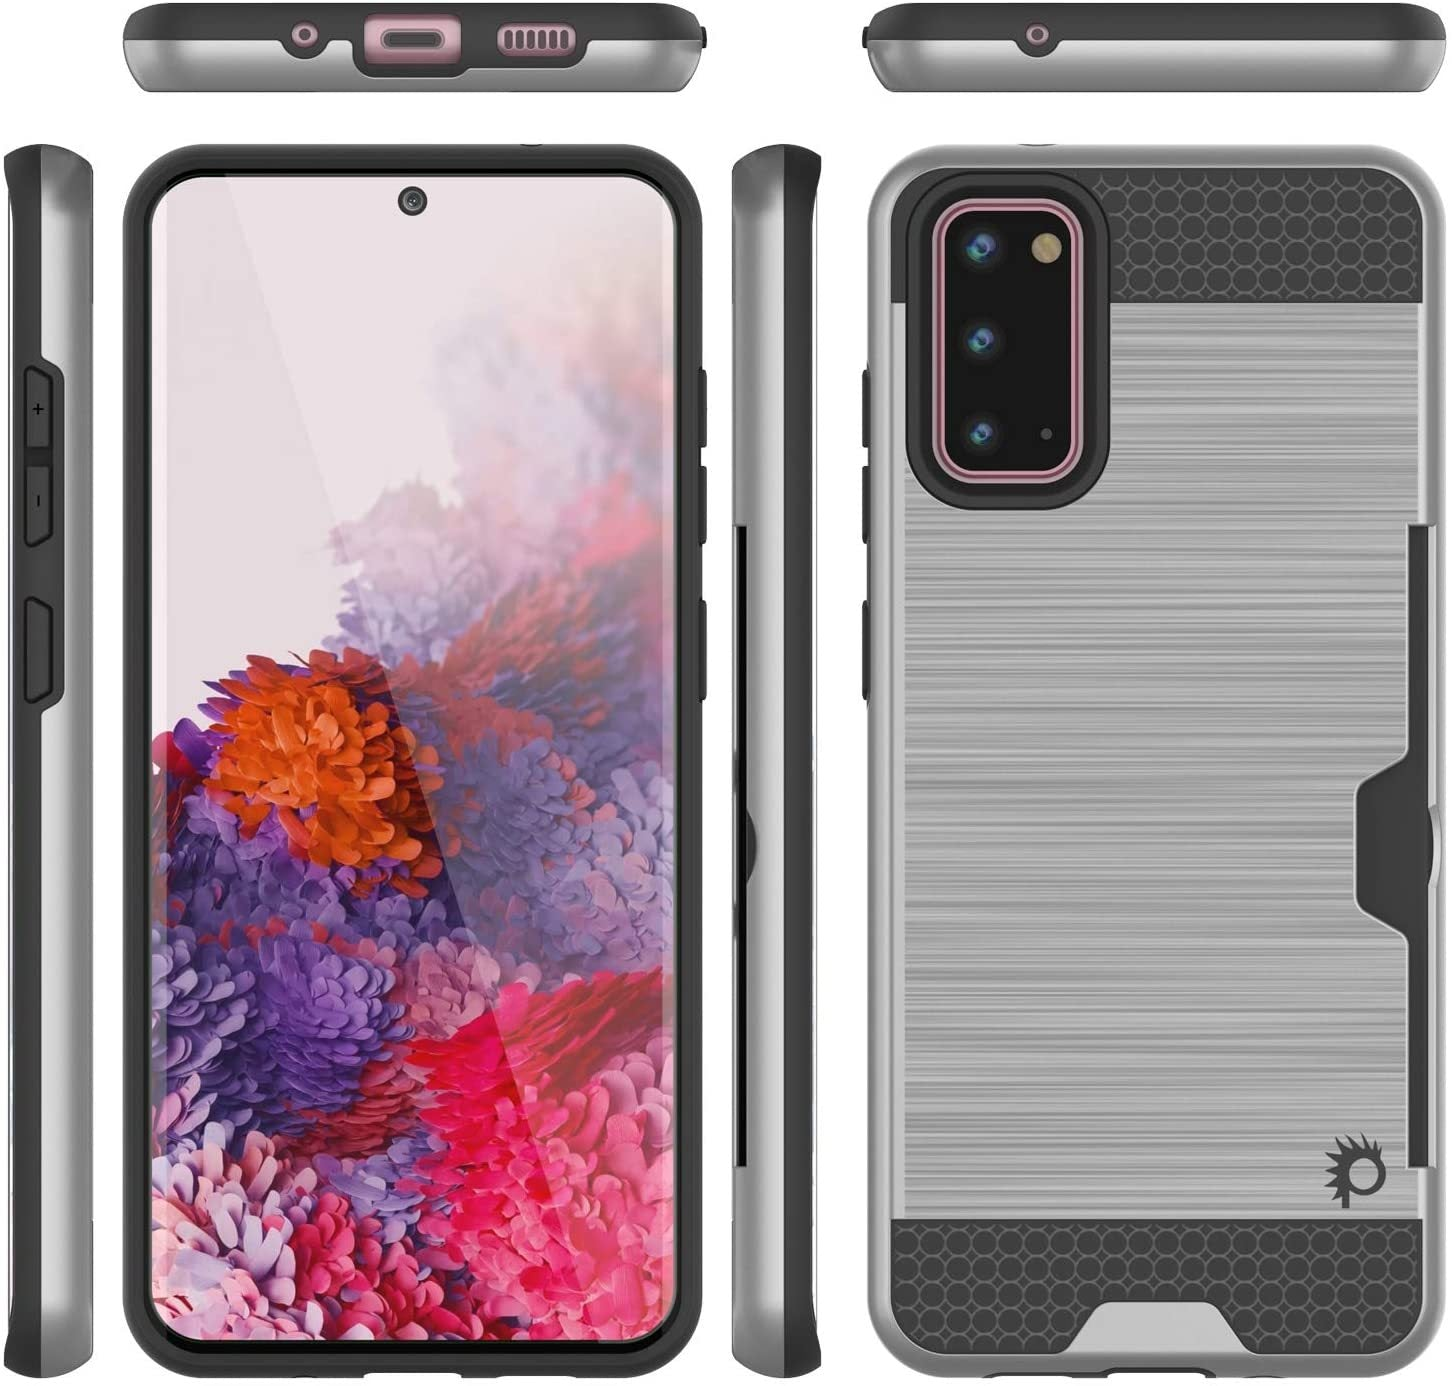 Galaxy S20 Case, PUNKcase [SLOT Series] [Slim Fit] Dual-Layer Armor Cover w/Integrated Anti-Shock System, Credit Card Slot [Silver]